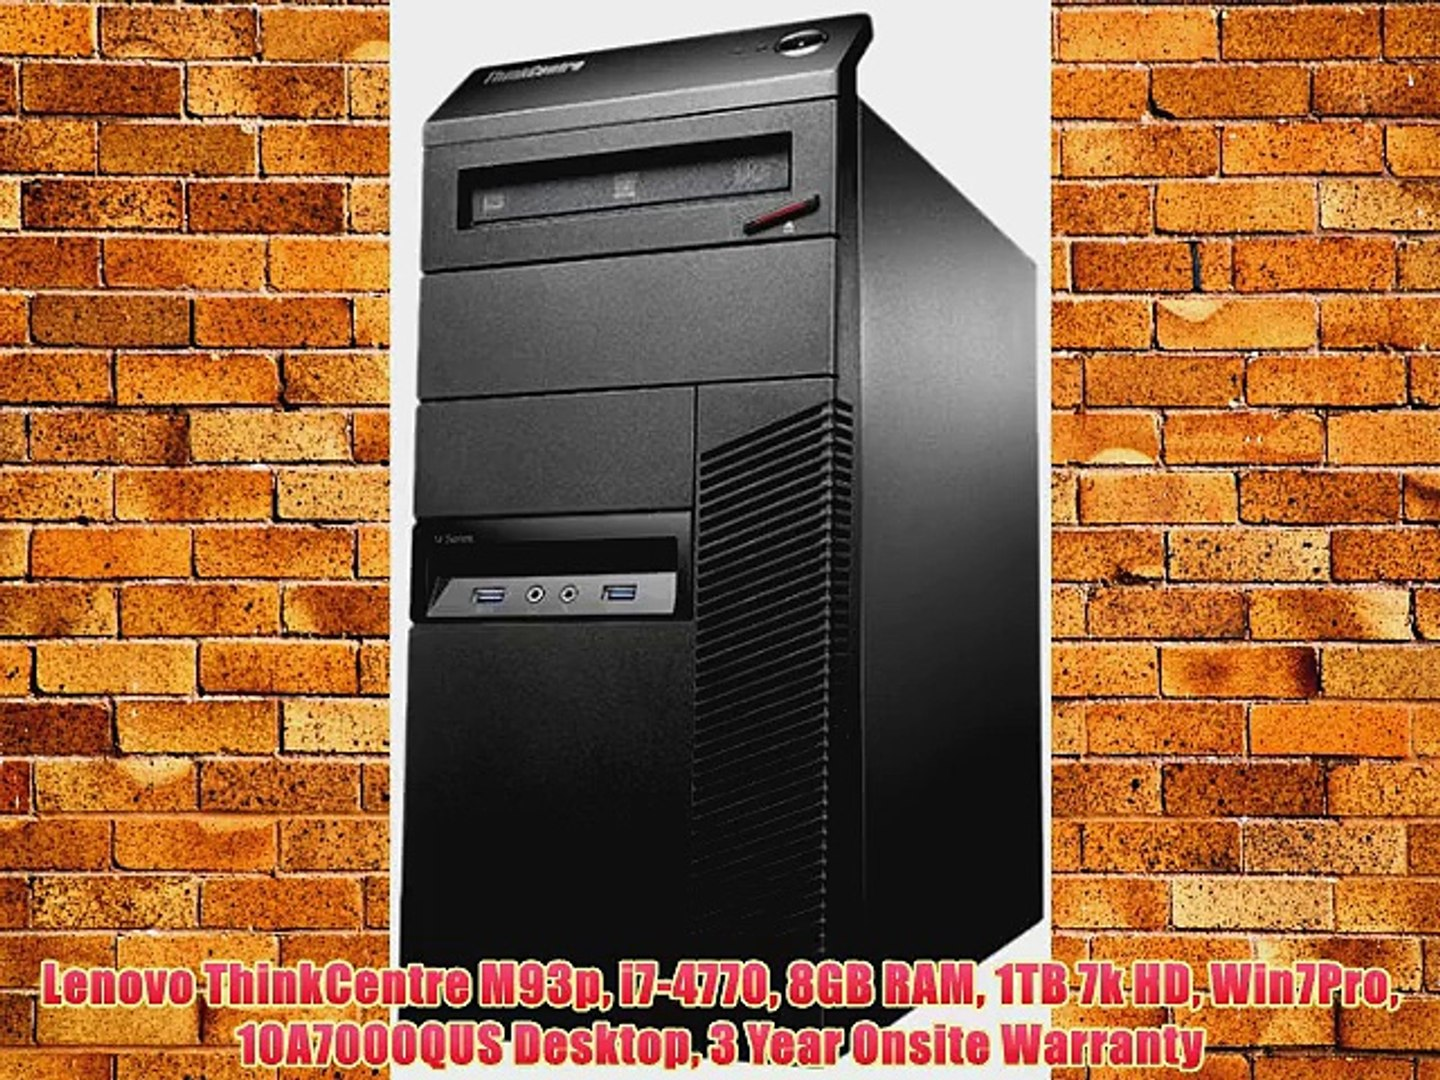 Lenovo ThinkCentre M93p i7-4770 8GB RAM 1TB 7k HD Win7Pro 10A7000QUS  Desktop 3 Year Onsite